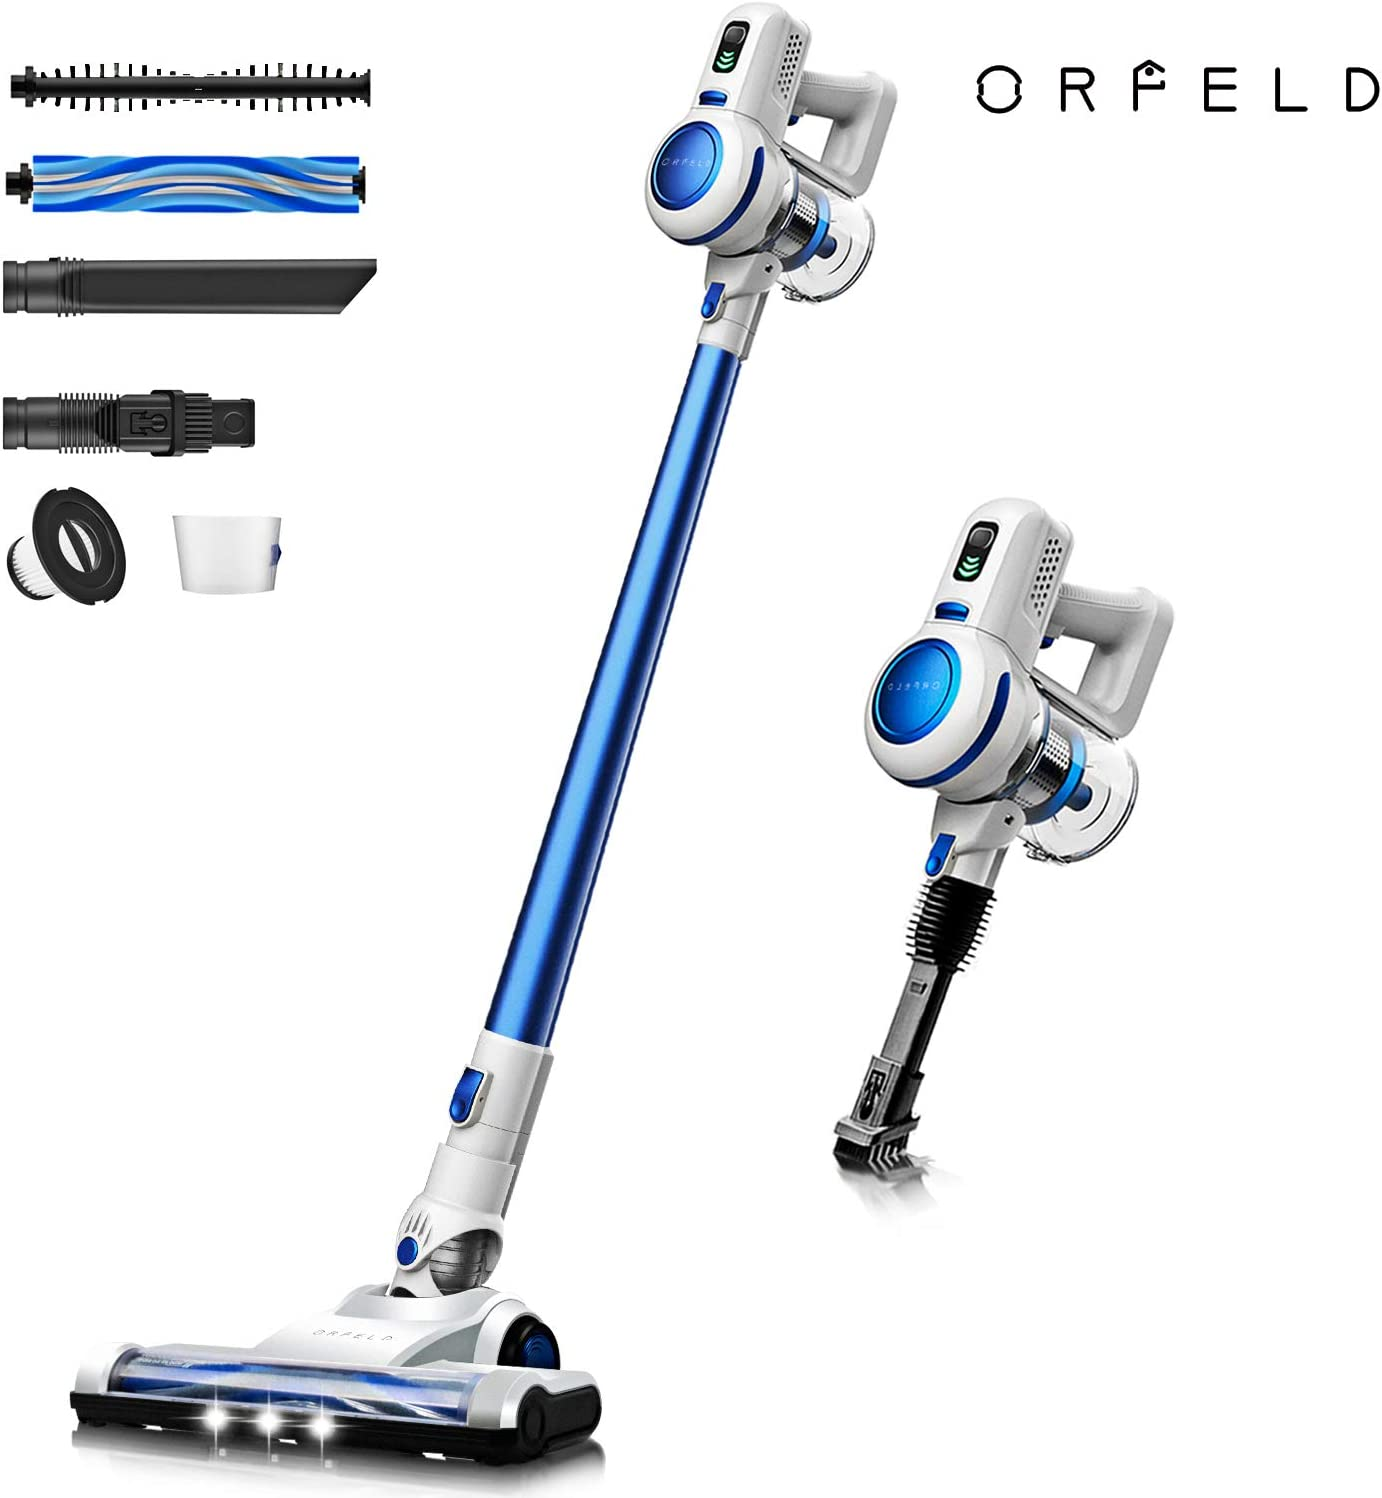 ORFELD Cordless Vacuum, Stick Vacuum Cleaner, 17Kpa Brushless Motor, Lightweight Handheld Vacuum Cleaner 4-in-1 Ultra-Quiet with LED Brush for Deep Clean Pet Hair Carpet Hard Floor